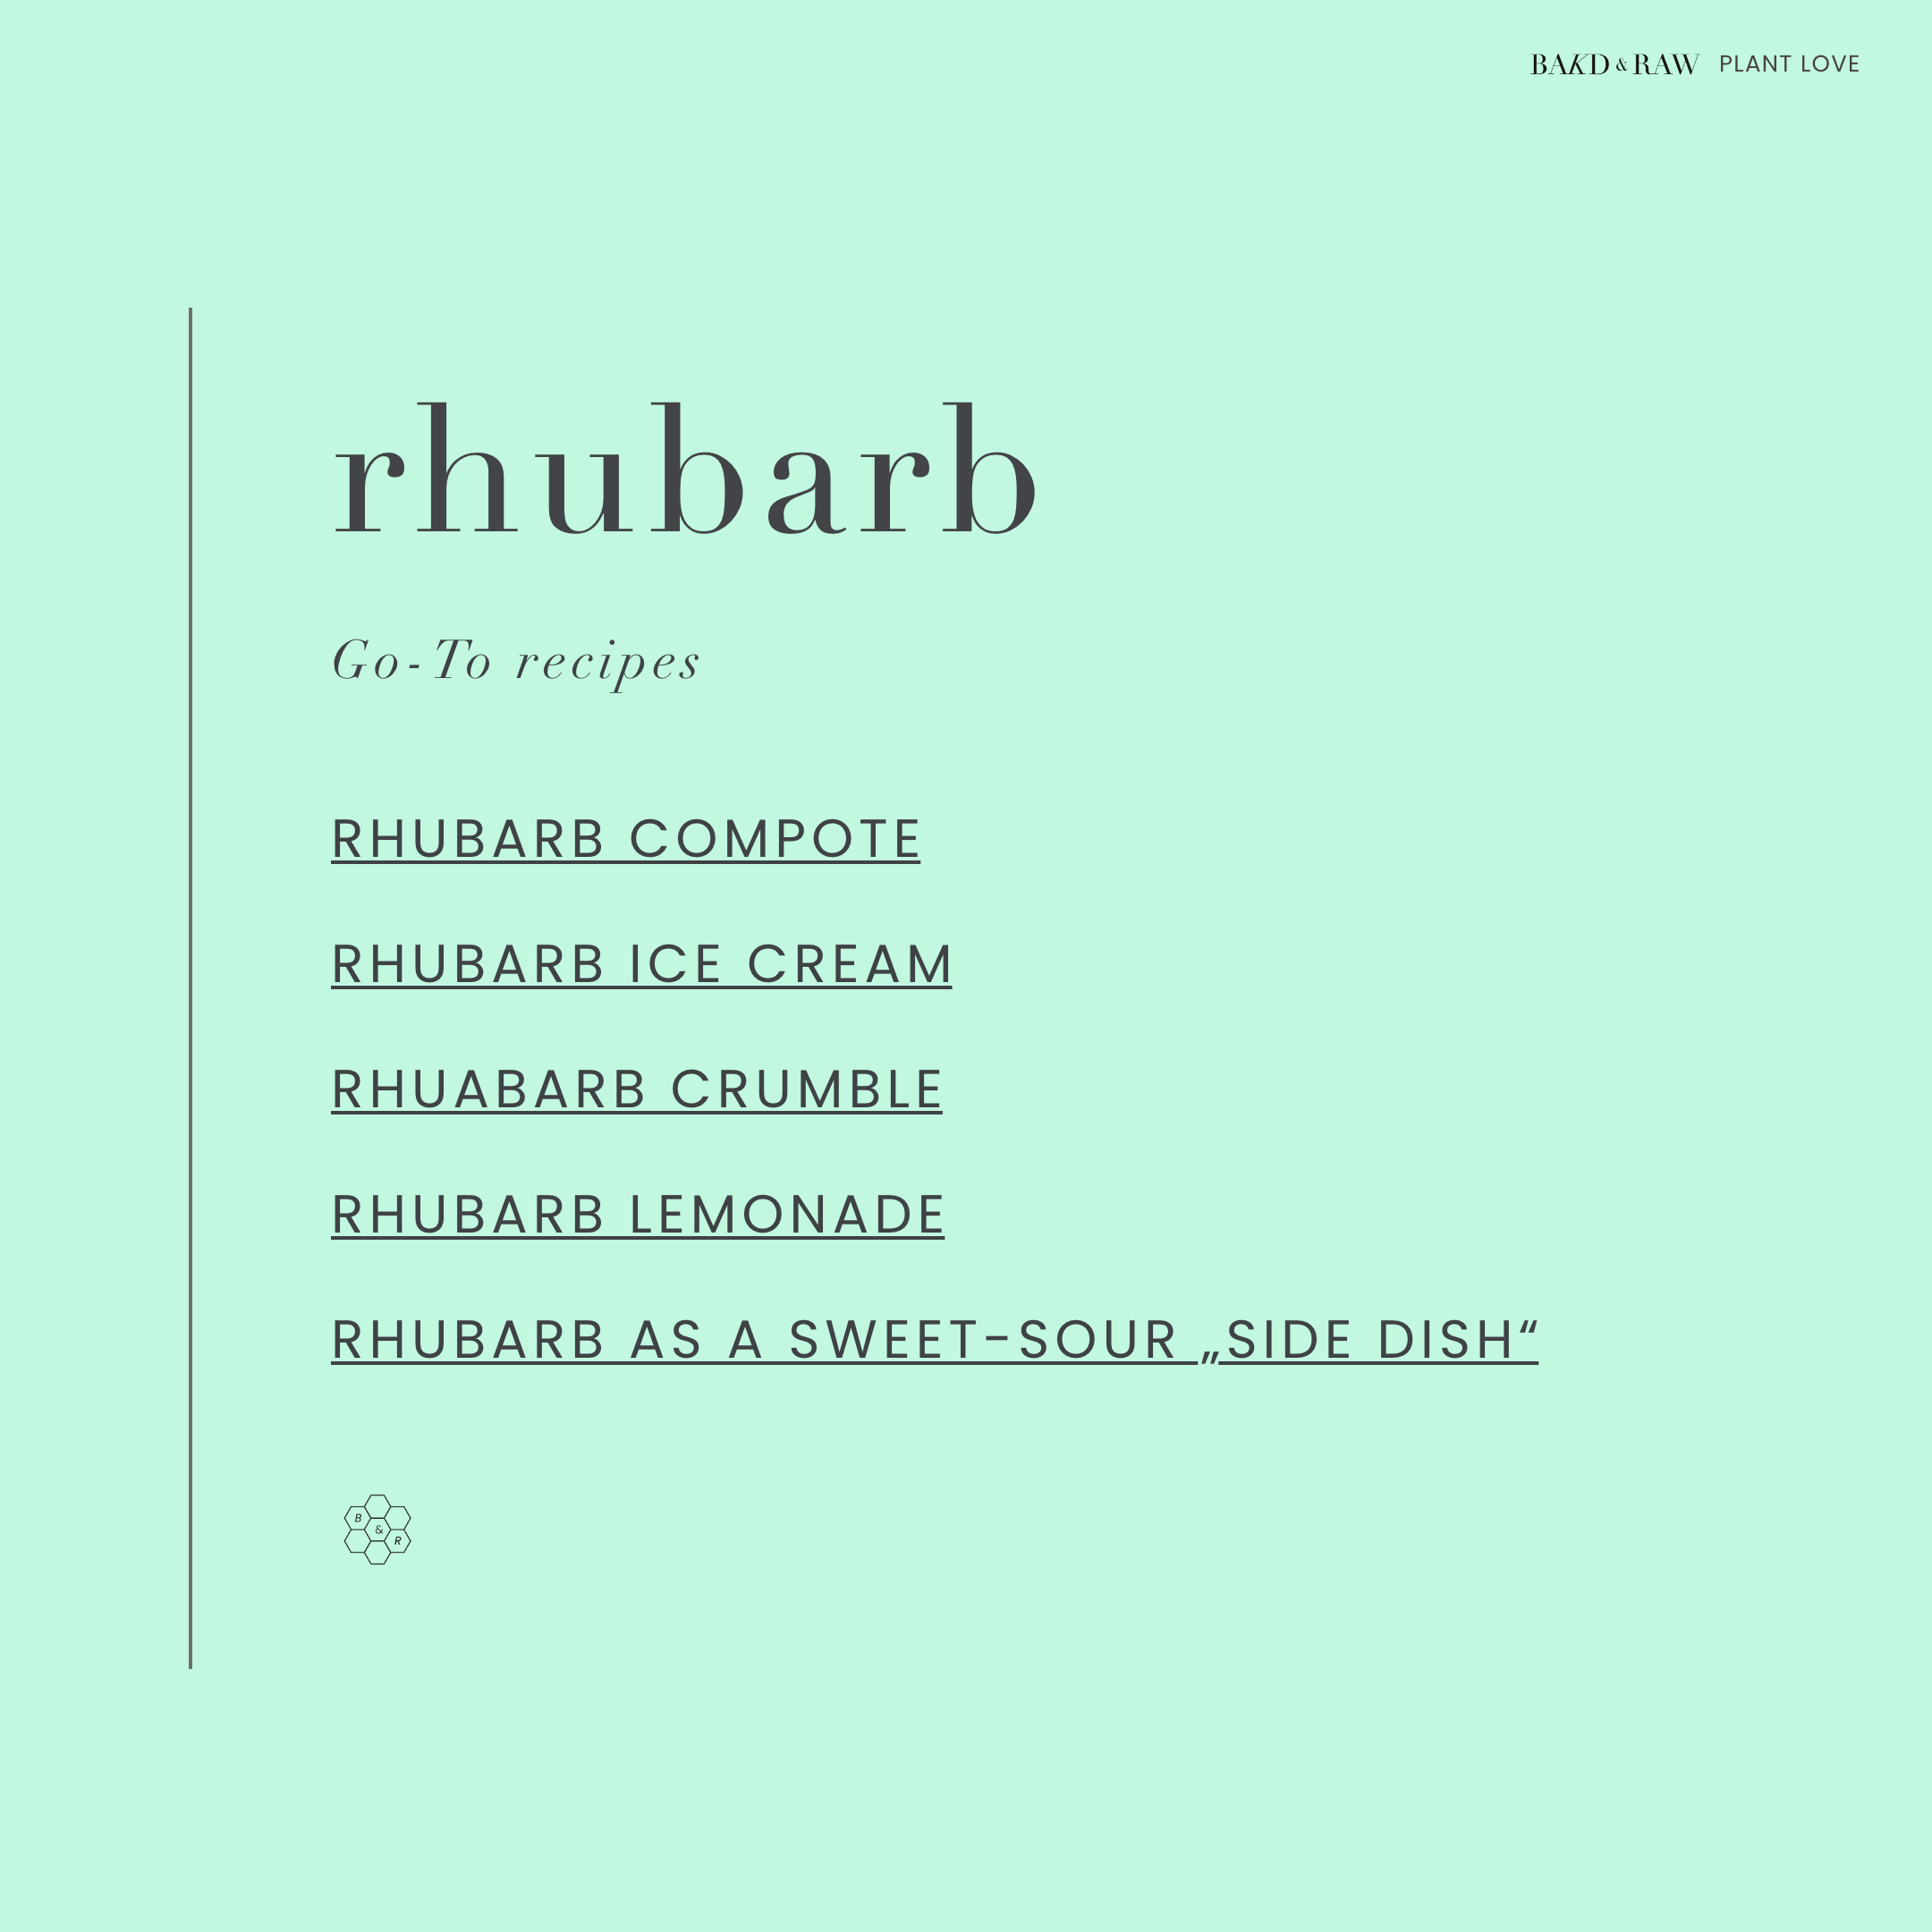 Rhubarb Recipe Ideas by Bakd&Raw